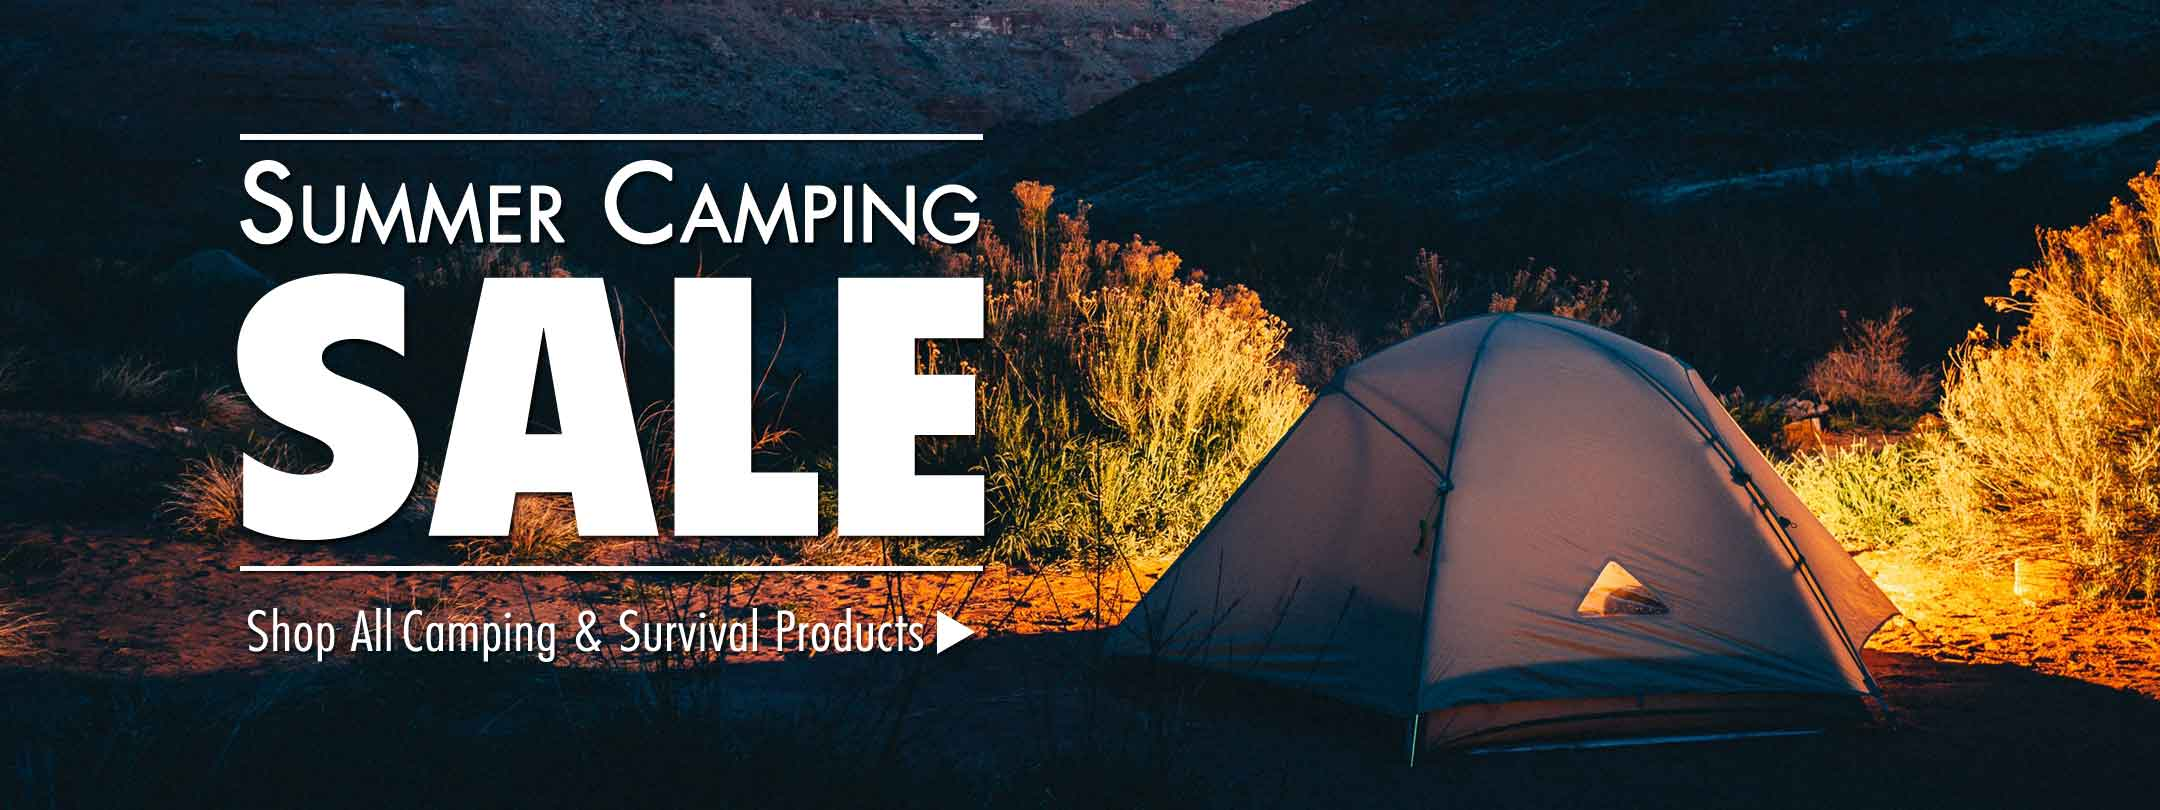 Summer Camping Sale - Save Now!